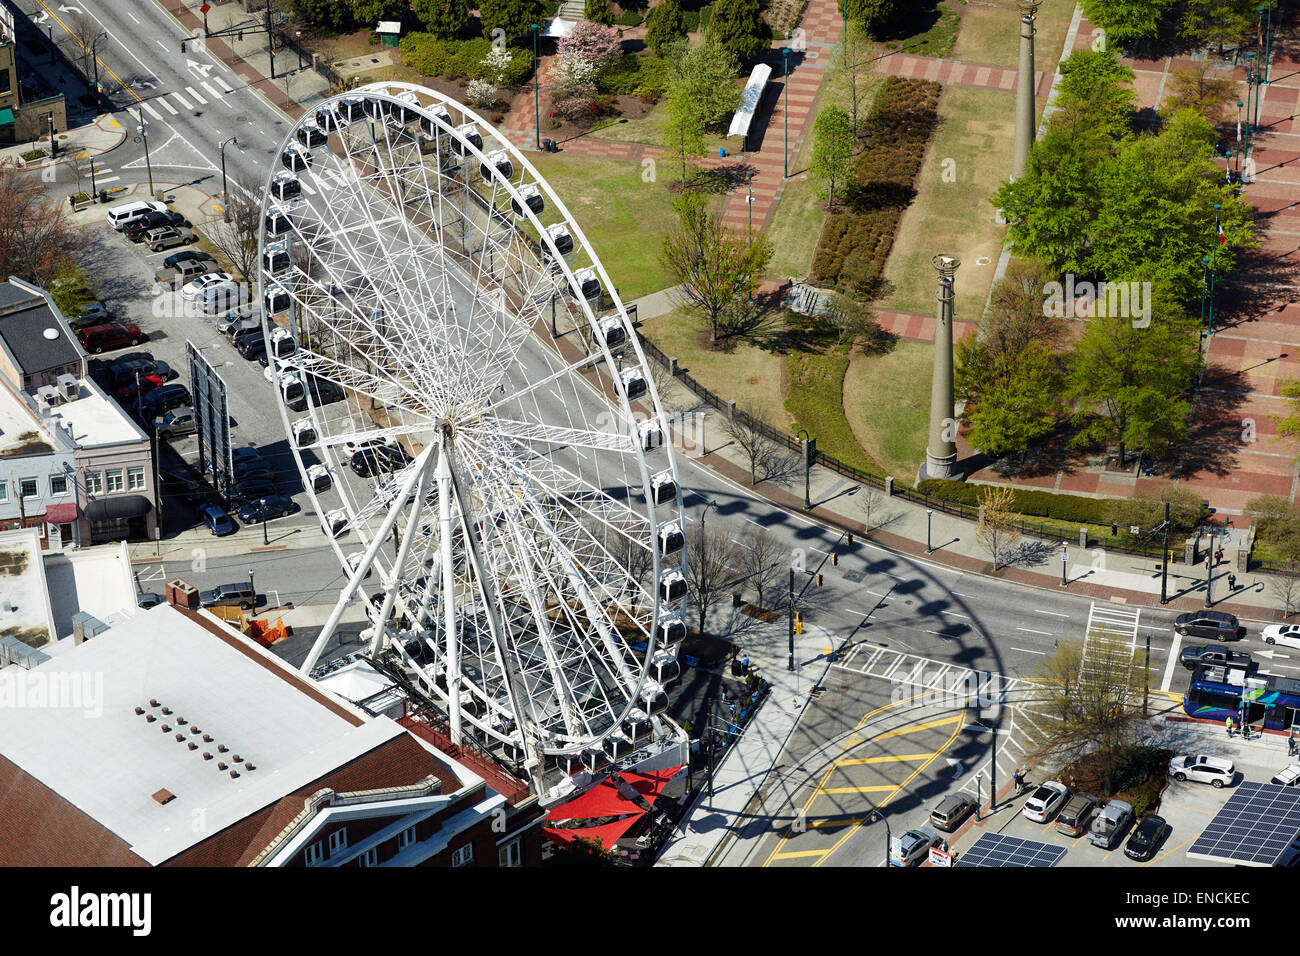 Hektar In M2 Downtown Atlanta Georga Usa Skyline Mit Er Riesenrad Im